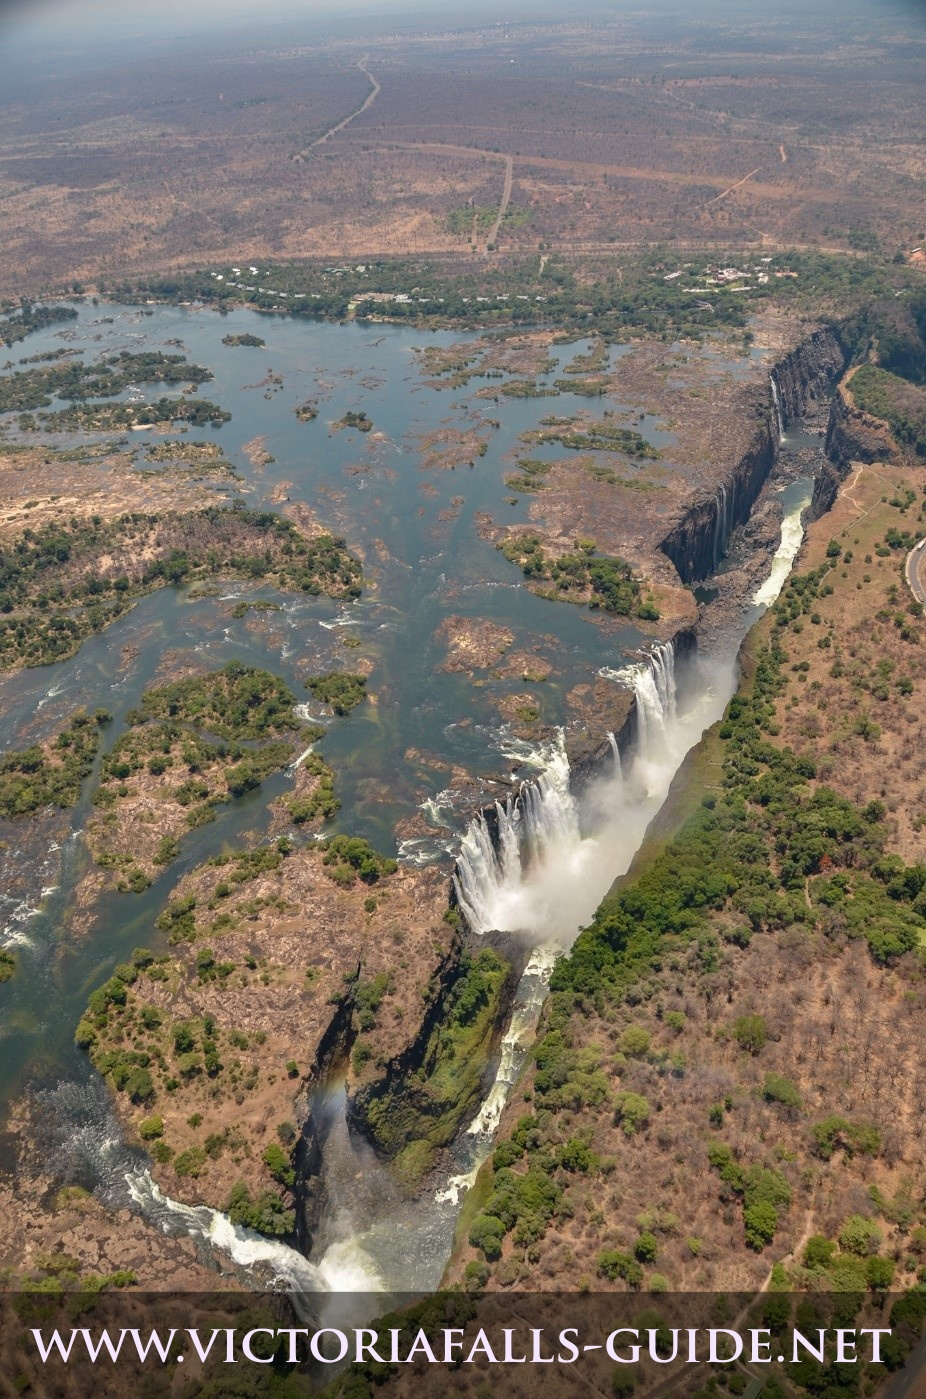 Aerial image of Victoria Falls Zimbabwe side taken 7 November 2014